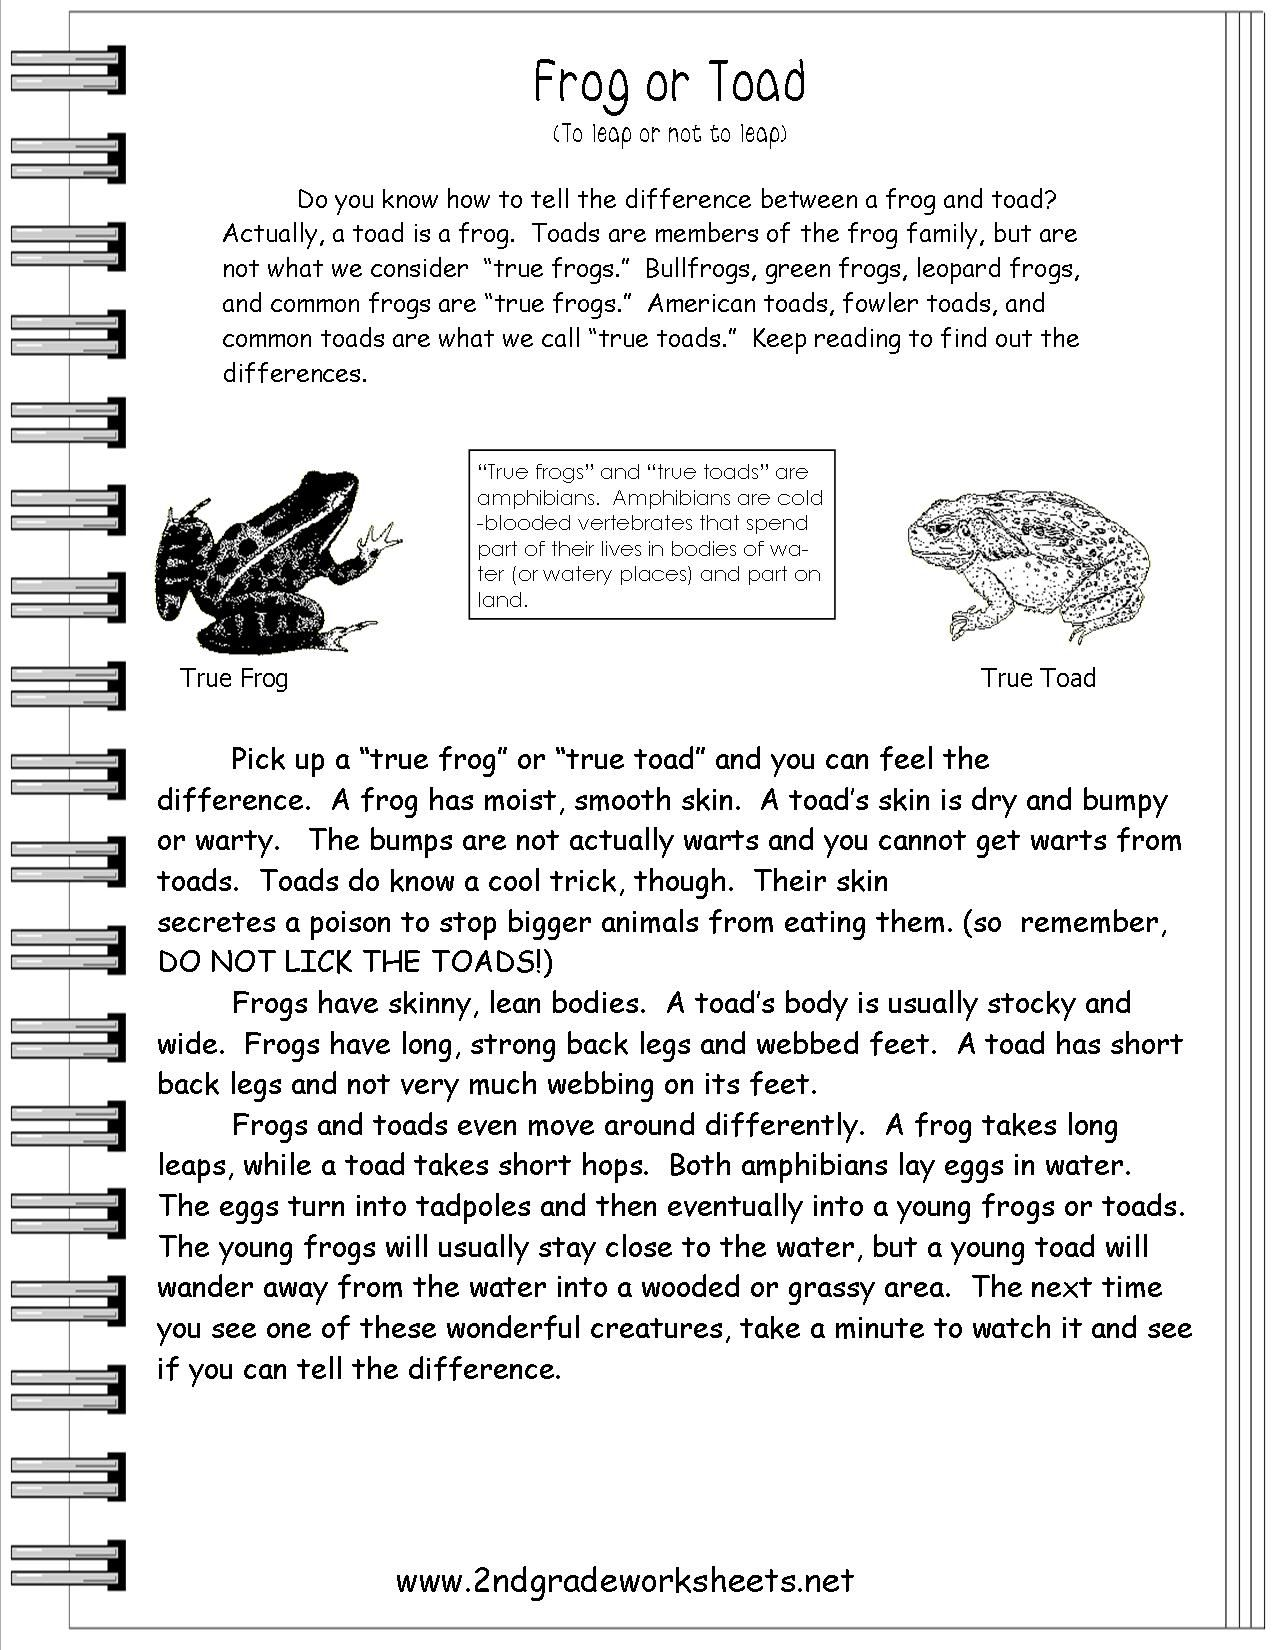 Frog Or Toad Worksheet